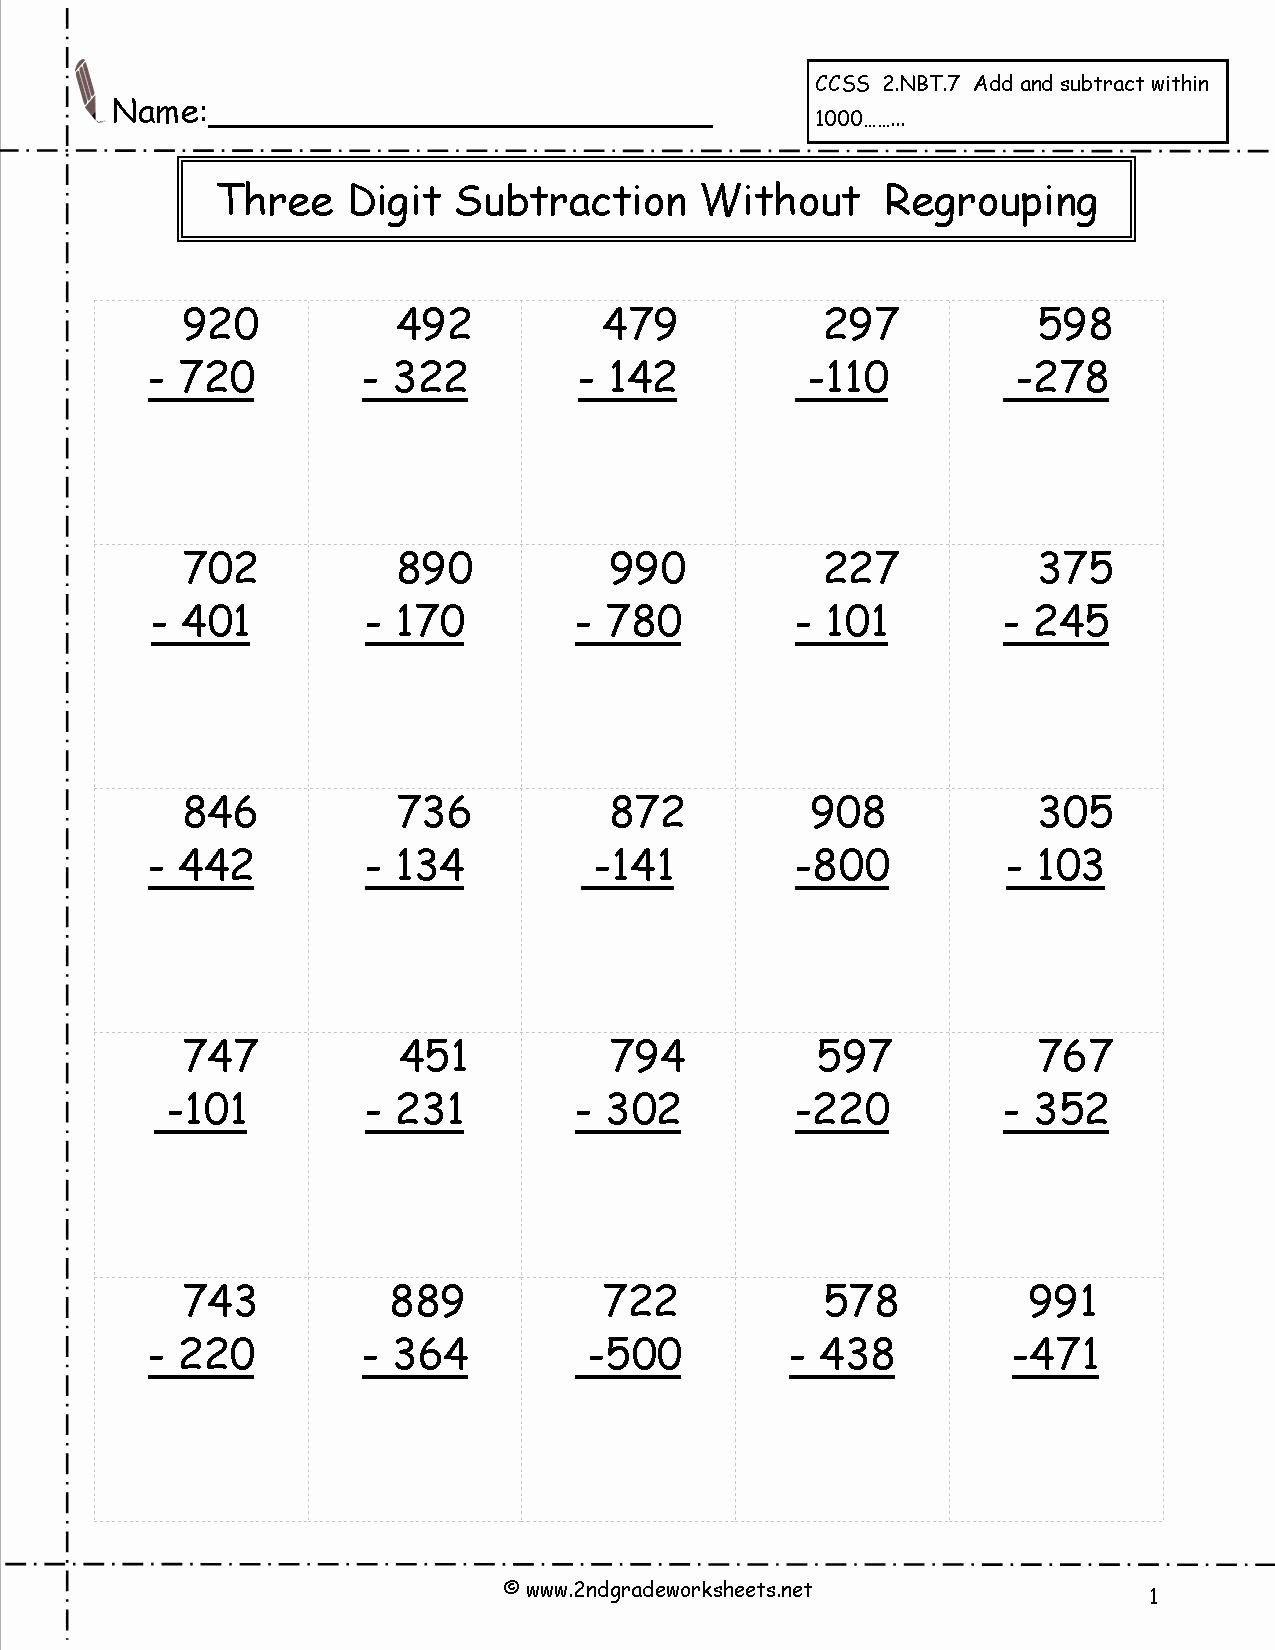 Regrouping Subtraction Worksheets 3rd Grade Printable Worksheet Printable Subtraction Worksheets for First Grade